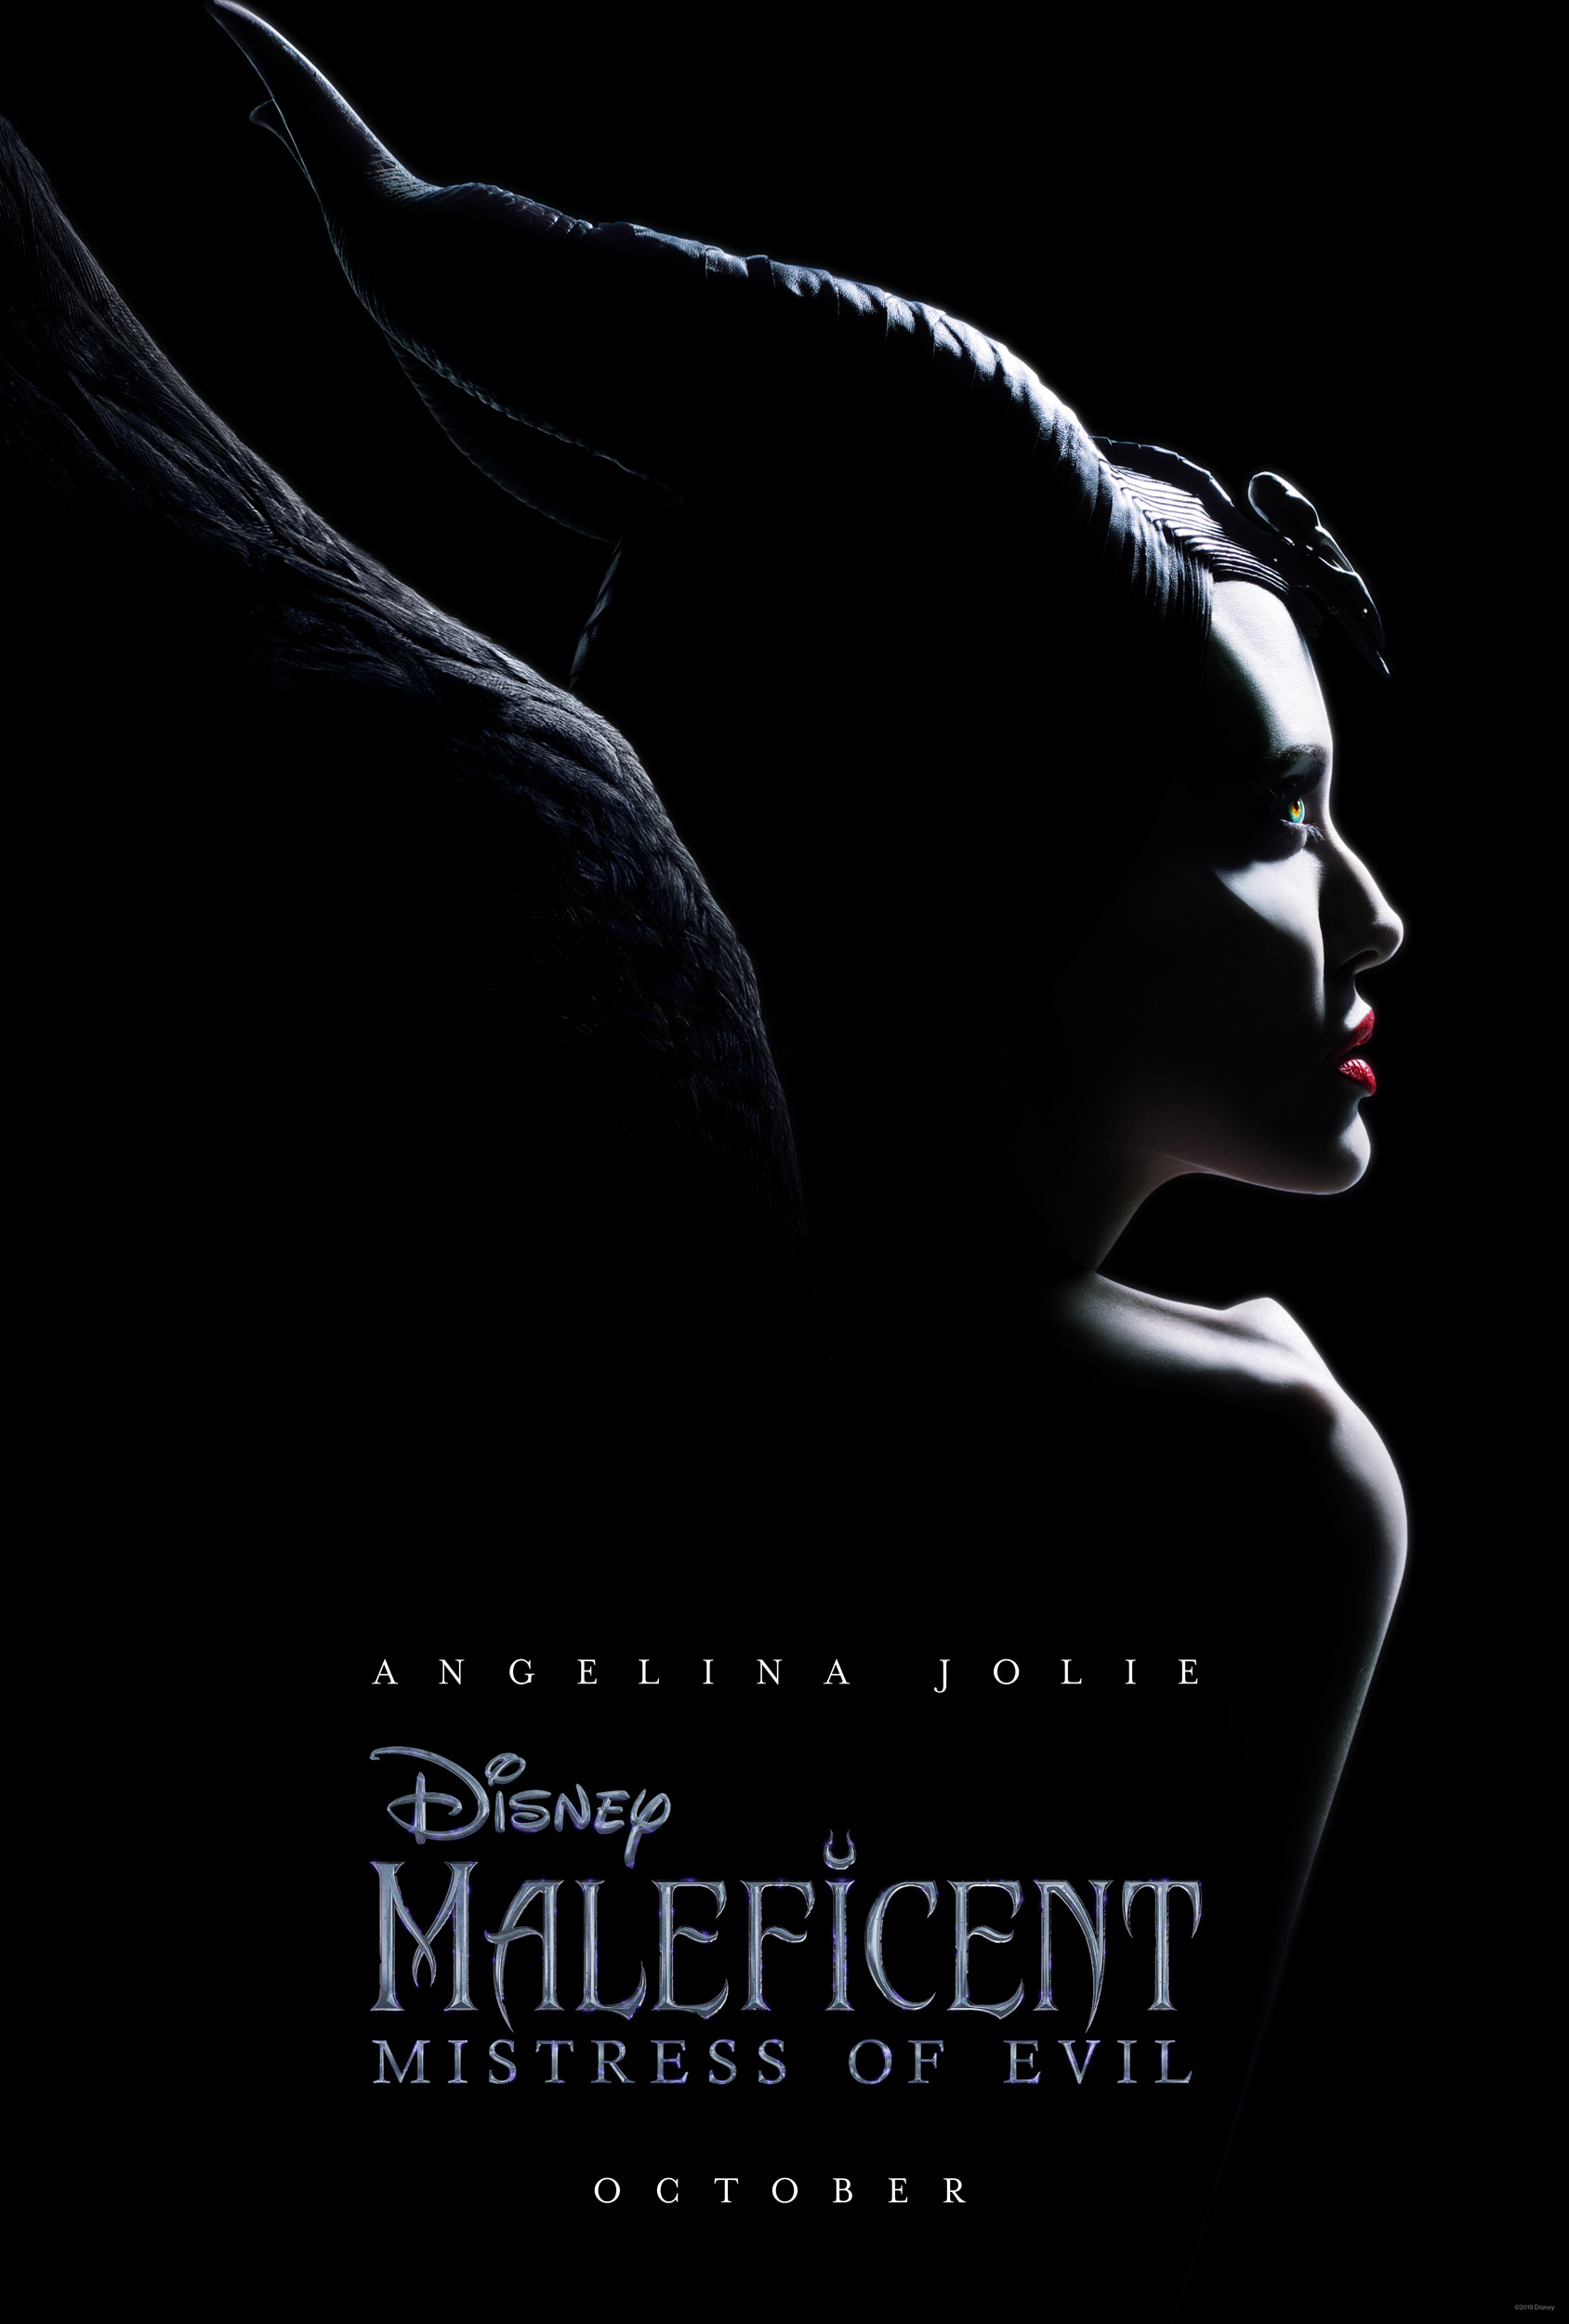 szmk_maleficent_mistress_of_evil_demona_a_sotetseg_urnoje_disney.jpg